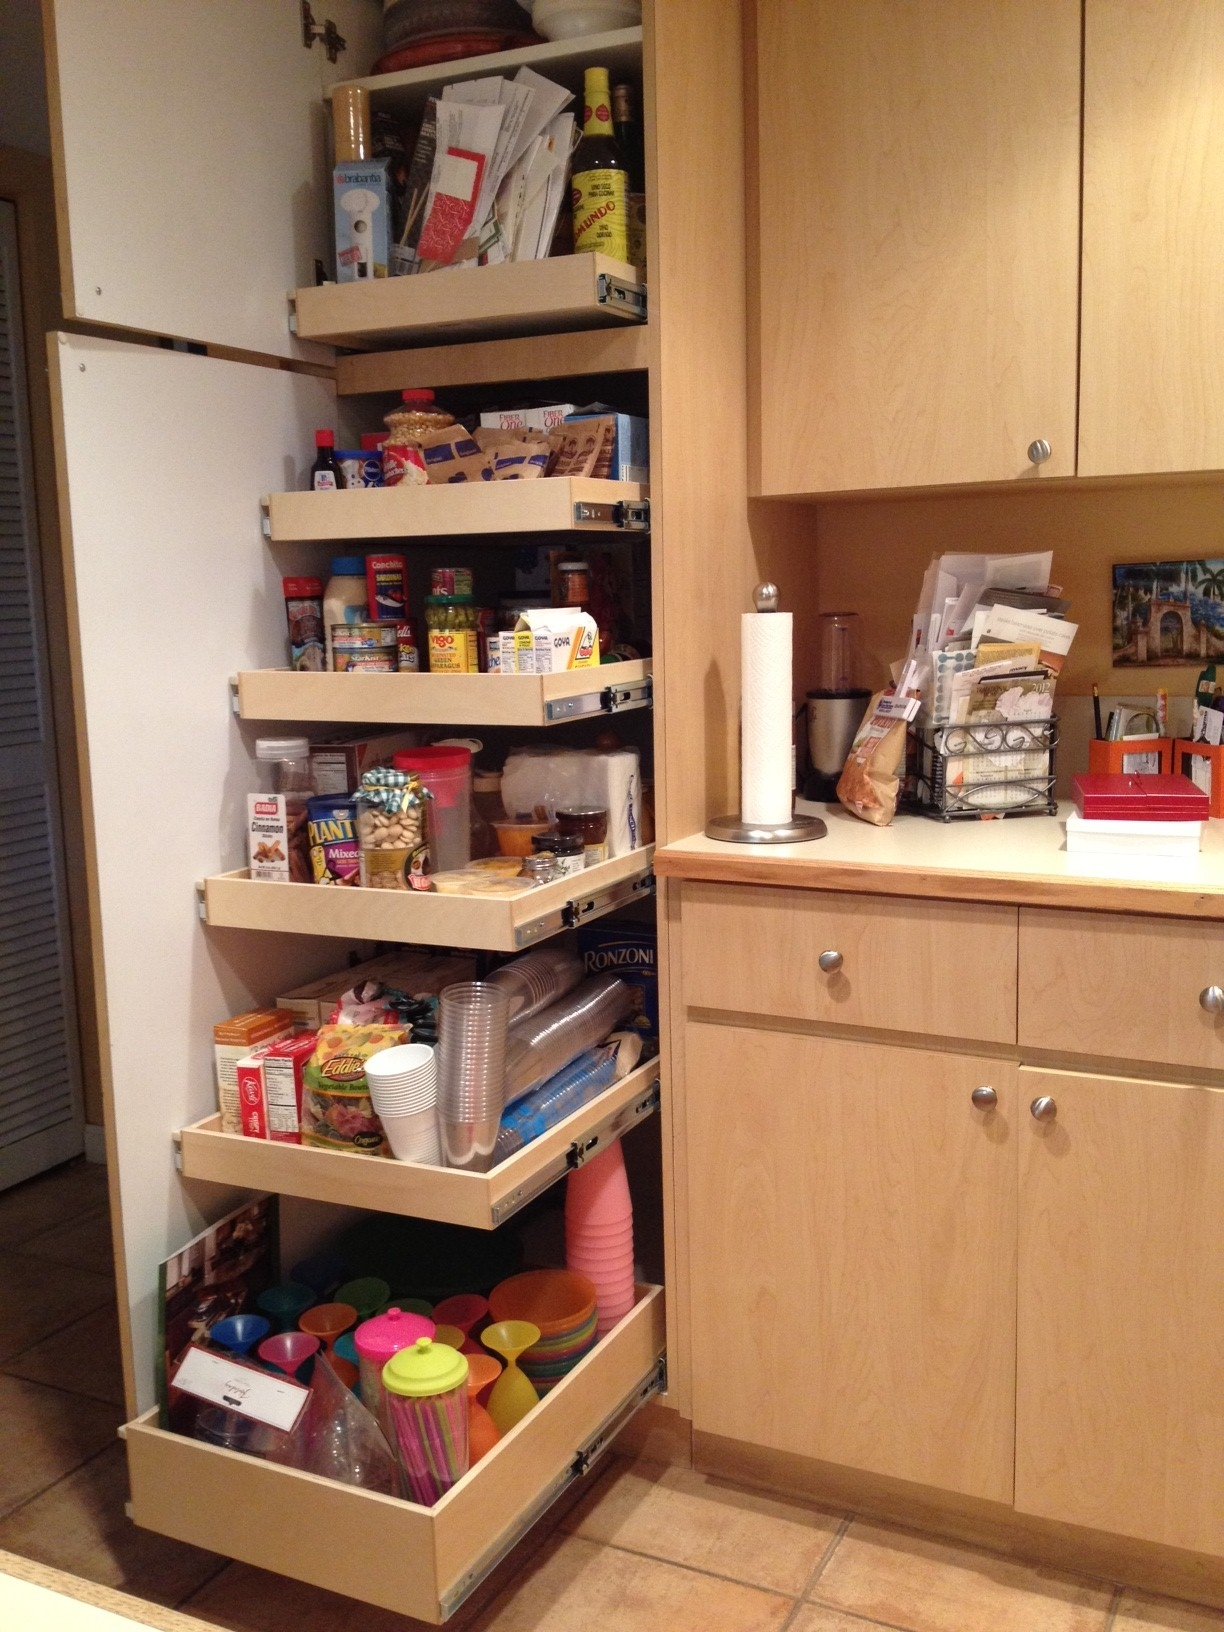 Kitchen Cabinet Shelving Systemskitchen cabinet shelving systems